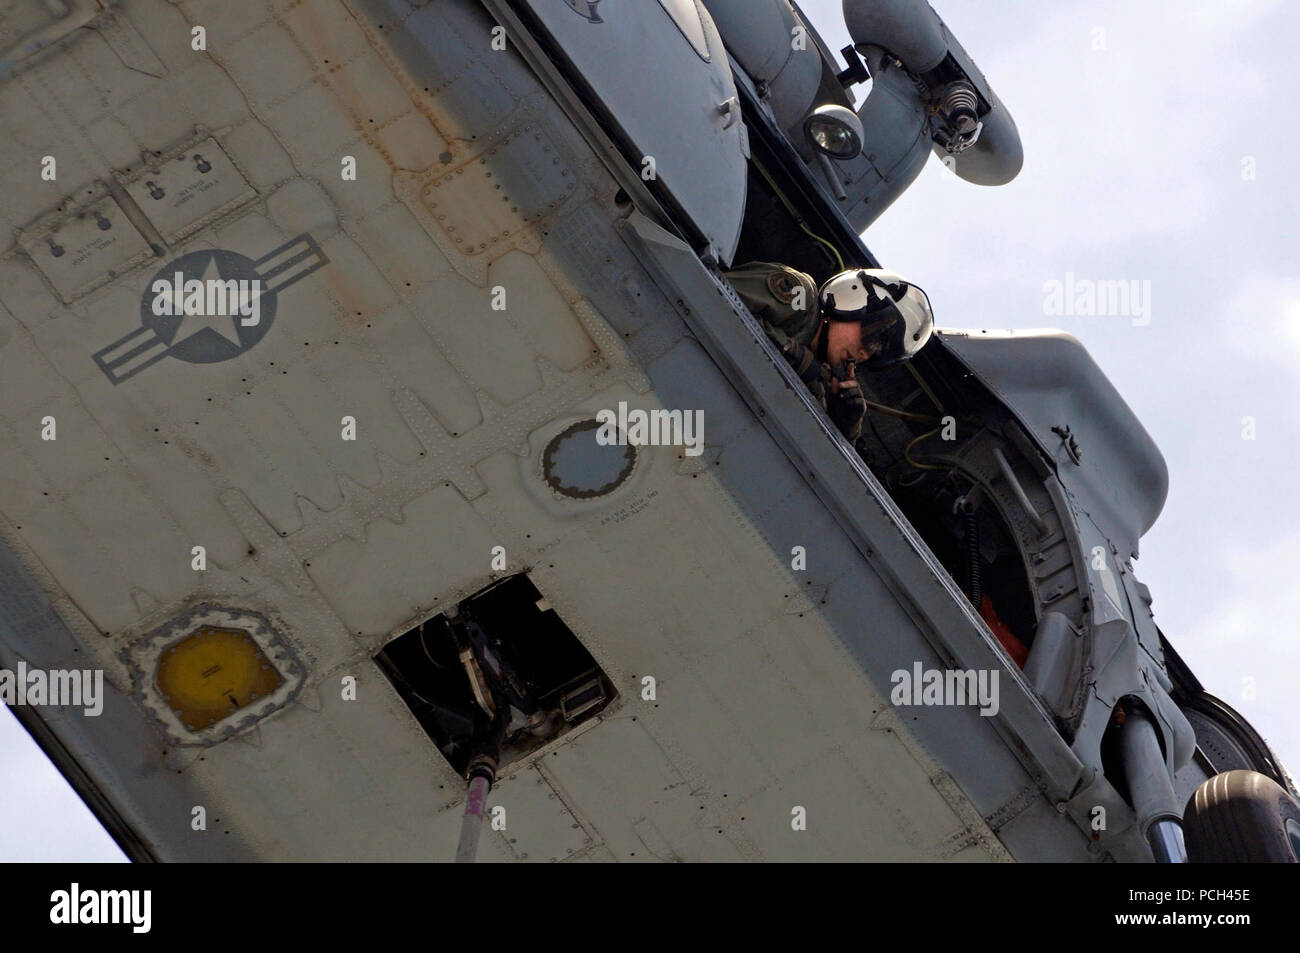 A U.S. Navy naval air crewman checks to see that an MH-60S Seahawk helicopter assigned to Helicopter Sea Combat Squadron (HSC) 23 is clear of the flight deck during a vertical replenishment between Military Sealift Command fast combat support ship USNS Bridge (T-AOE 10) and amphibious dock landing ship USS Comstock (LSD 45) in the Persian Gulf May 17, 2011. Comstock was under way supporting maritime security operations and theater security cooperation efforts in the U.S. 5th Fleet area of responsibility. - Stock Image